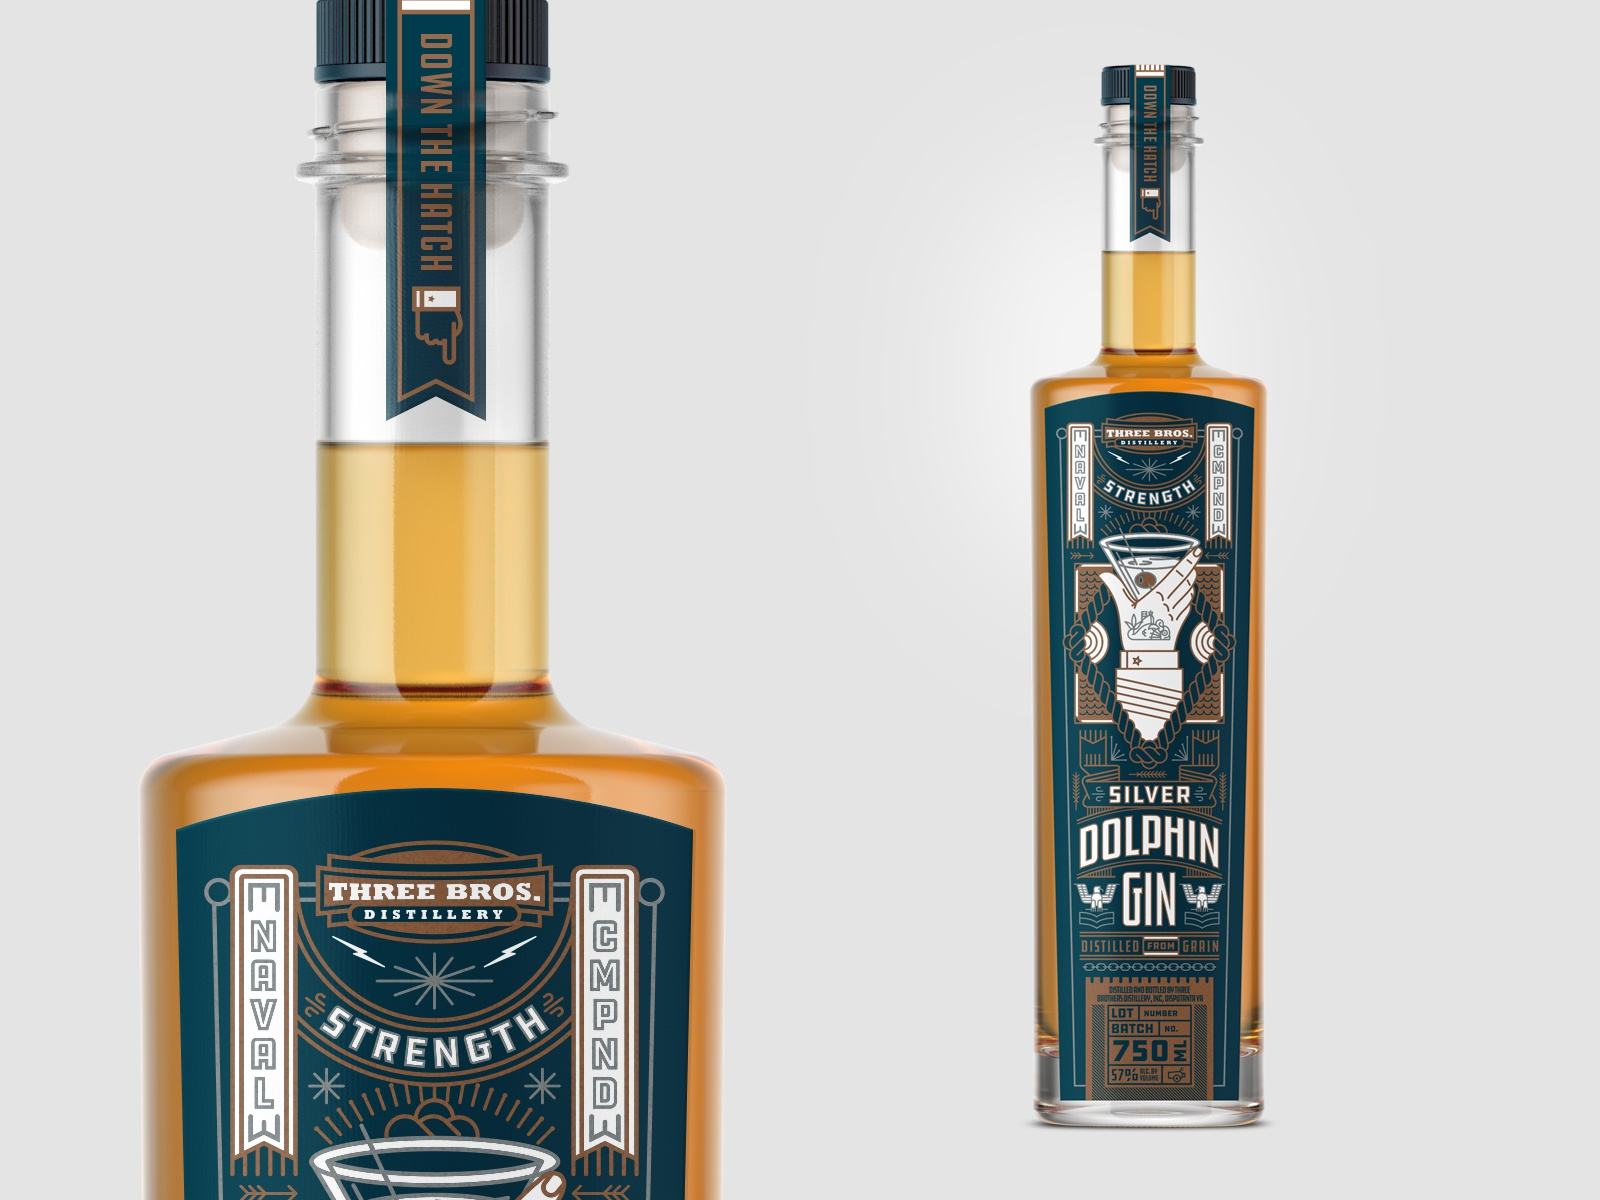 Threebrothersdistillery discoverychannel whiskeybusiness packaging label gin kendrickkidd